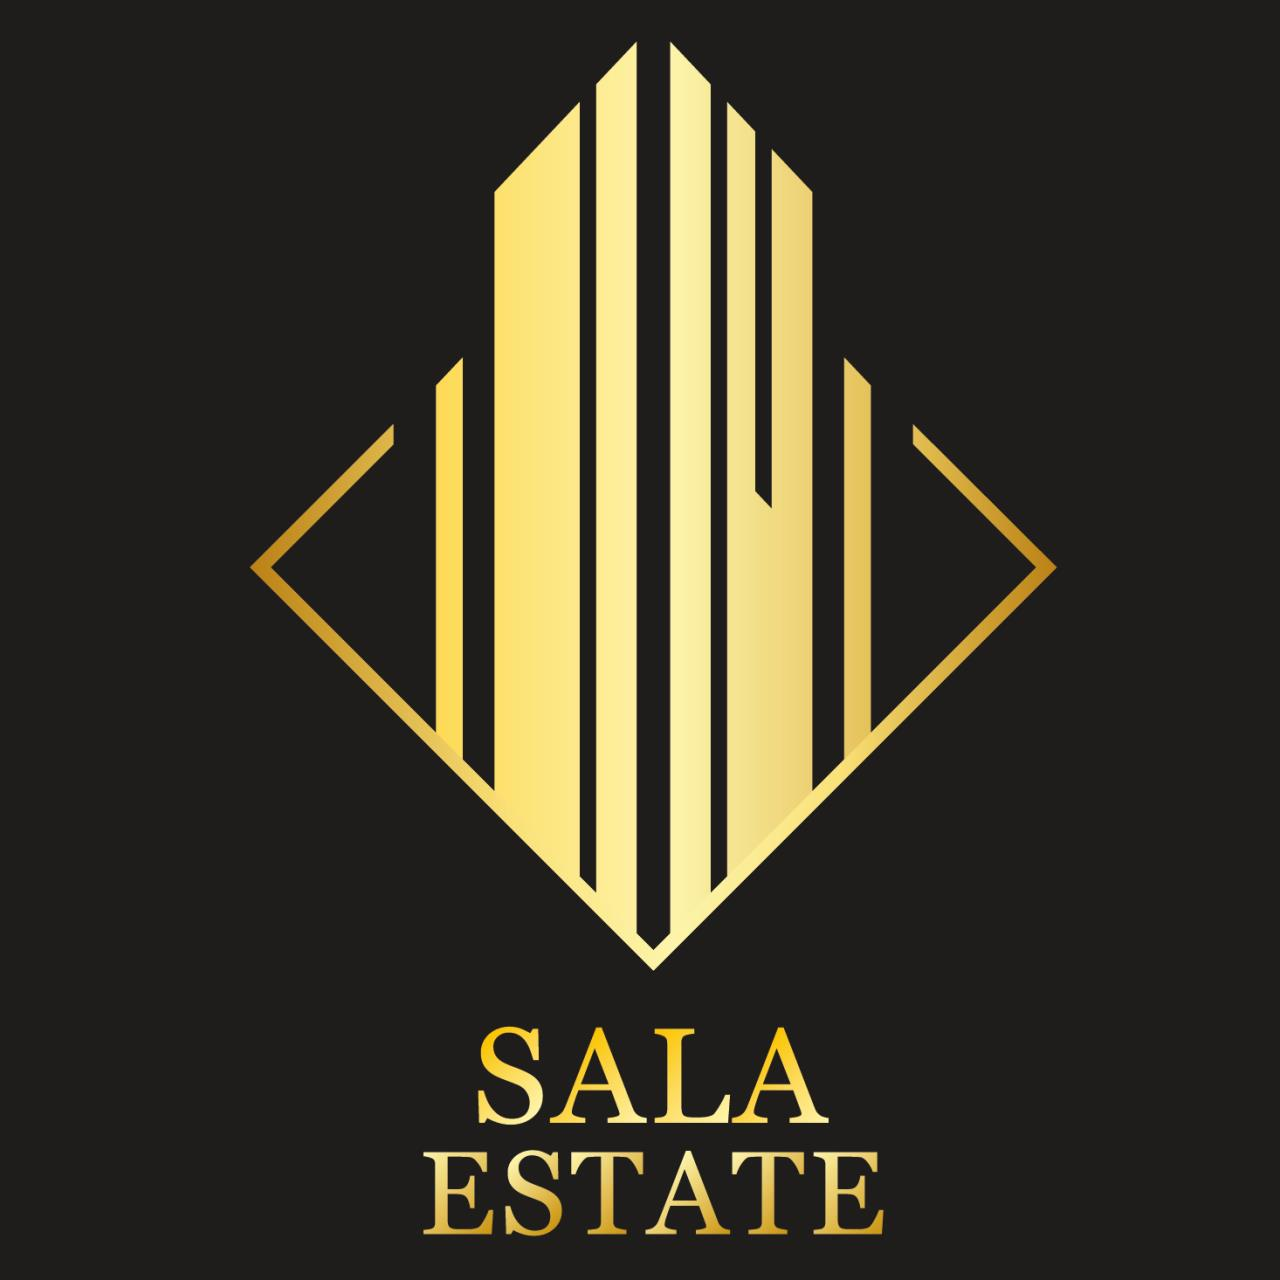 SALA ESTATE logo